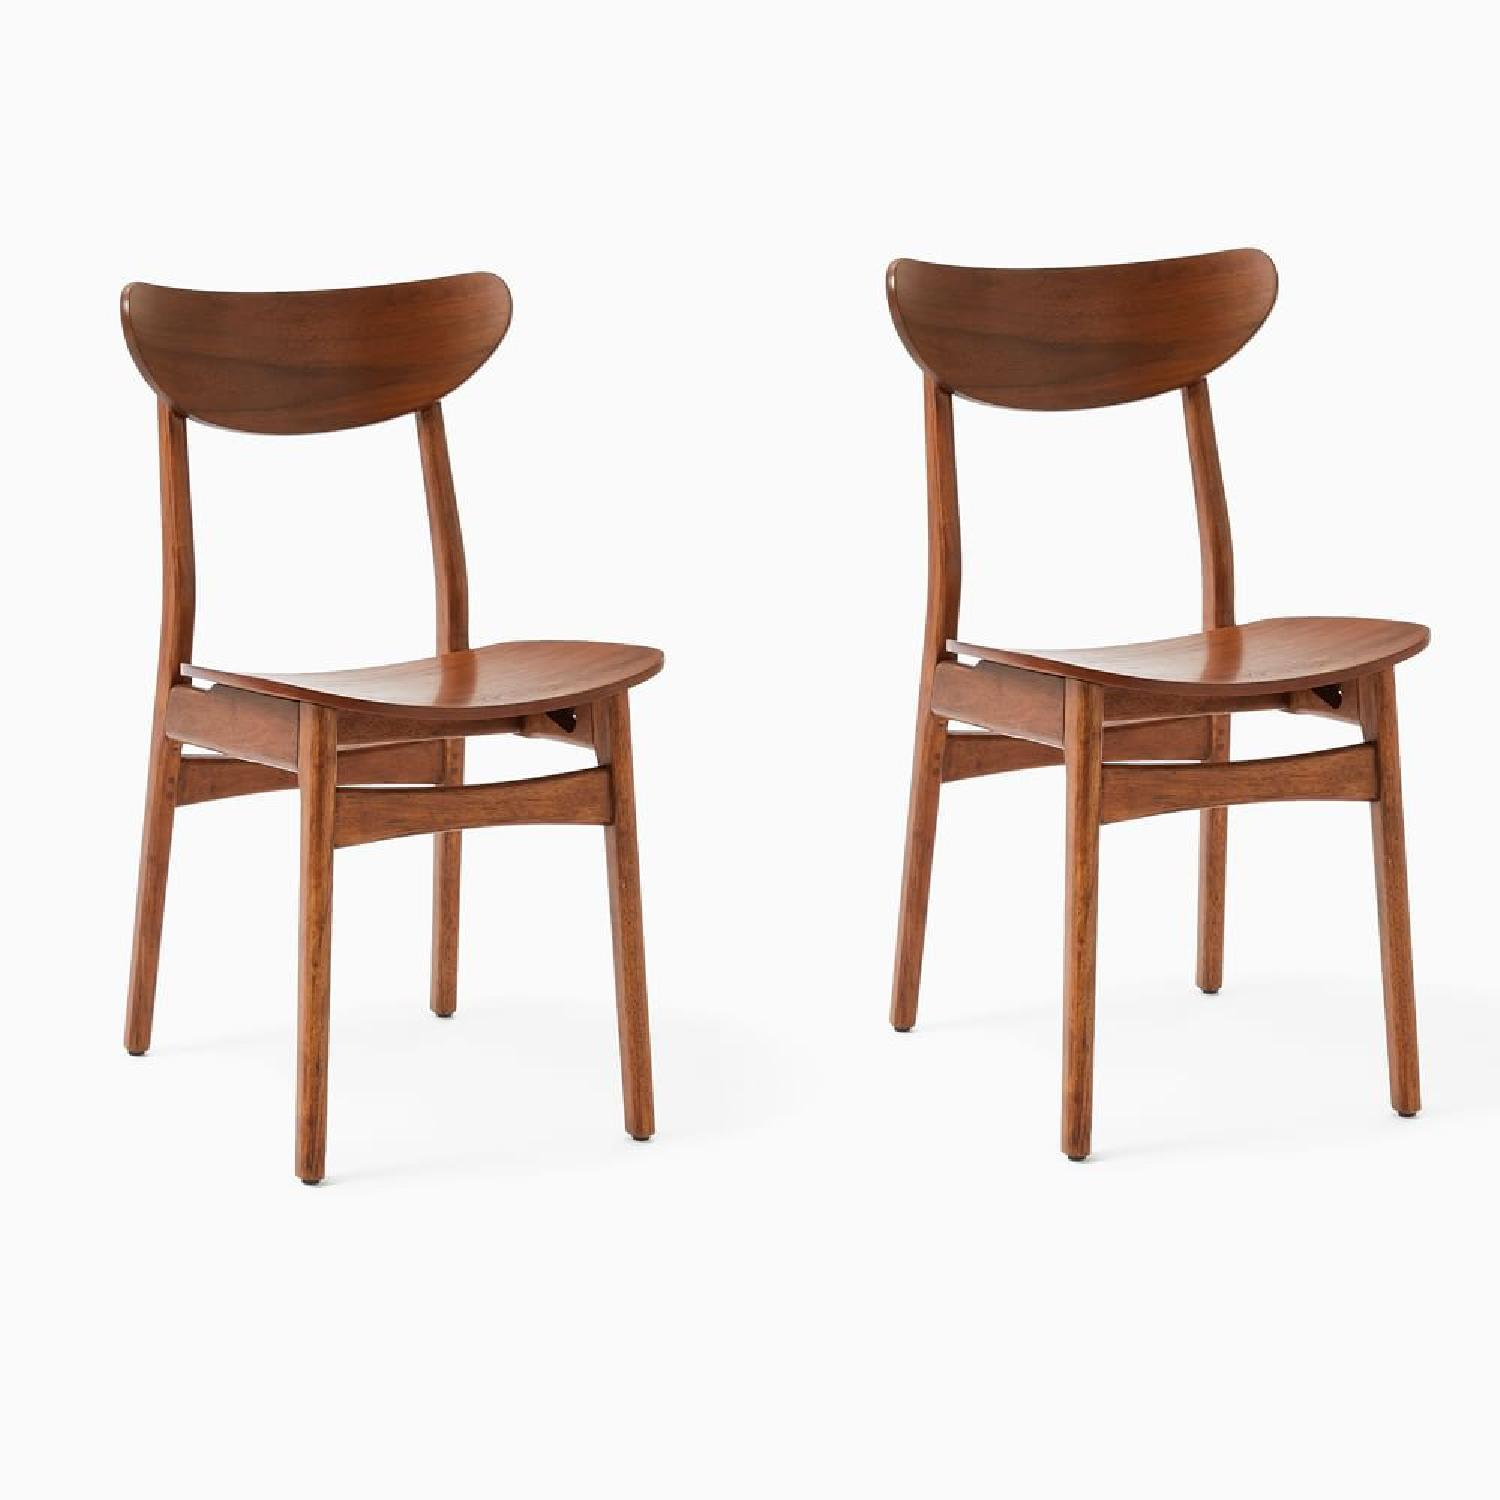 West Elm Walnut Dining Chairs - image-5